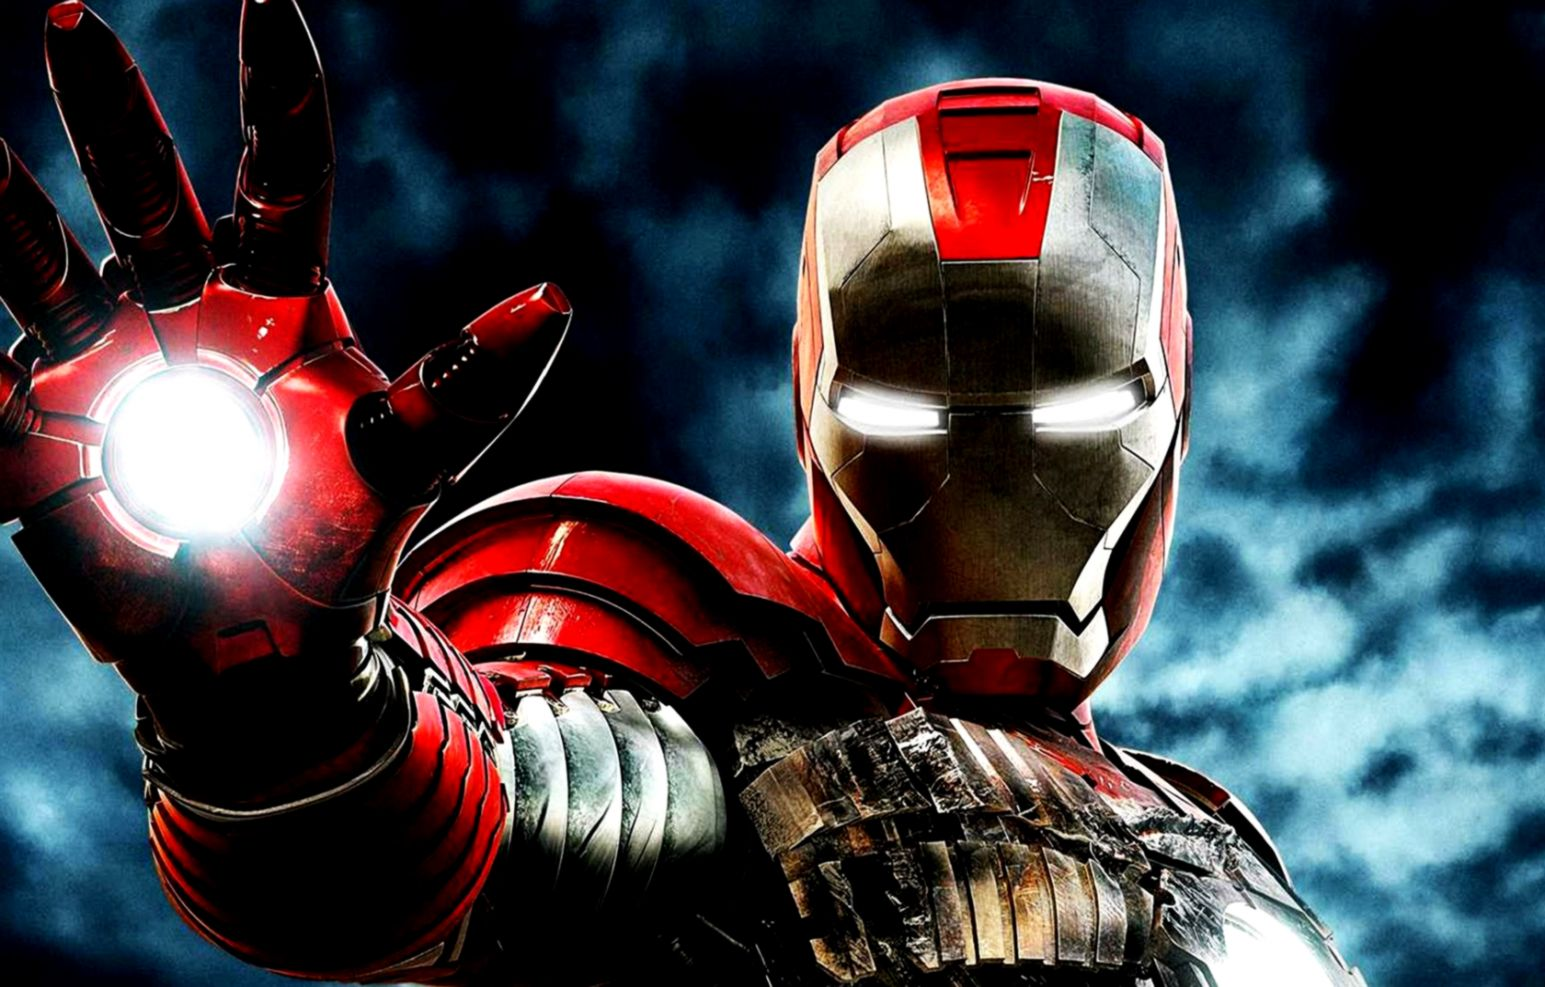 Iron Man 3 Widescreen Wallpapers Soft Wallpapers